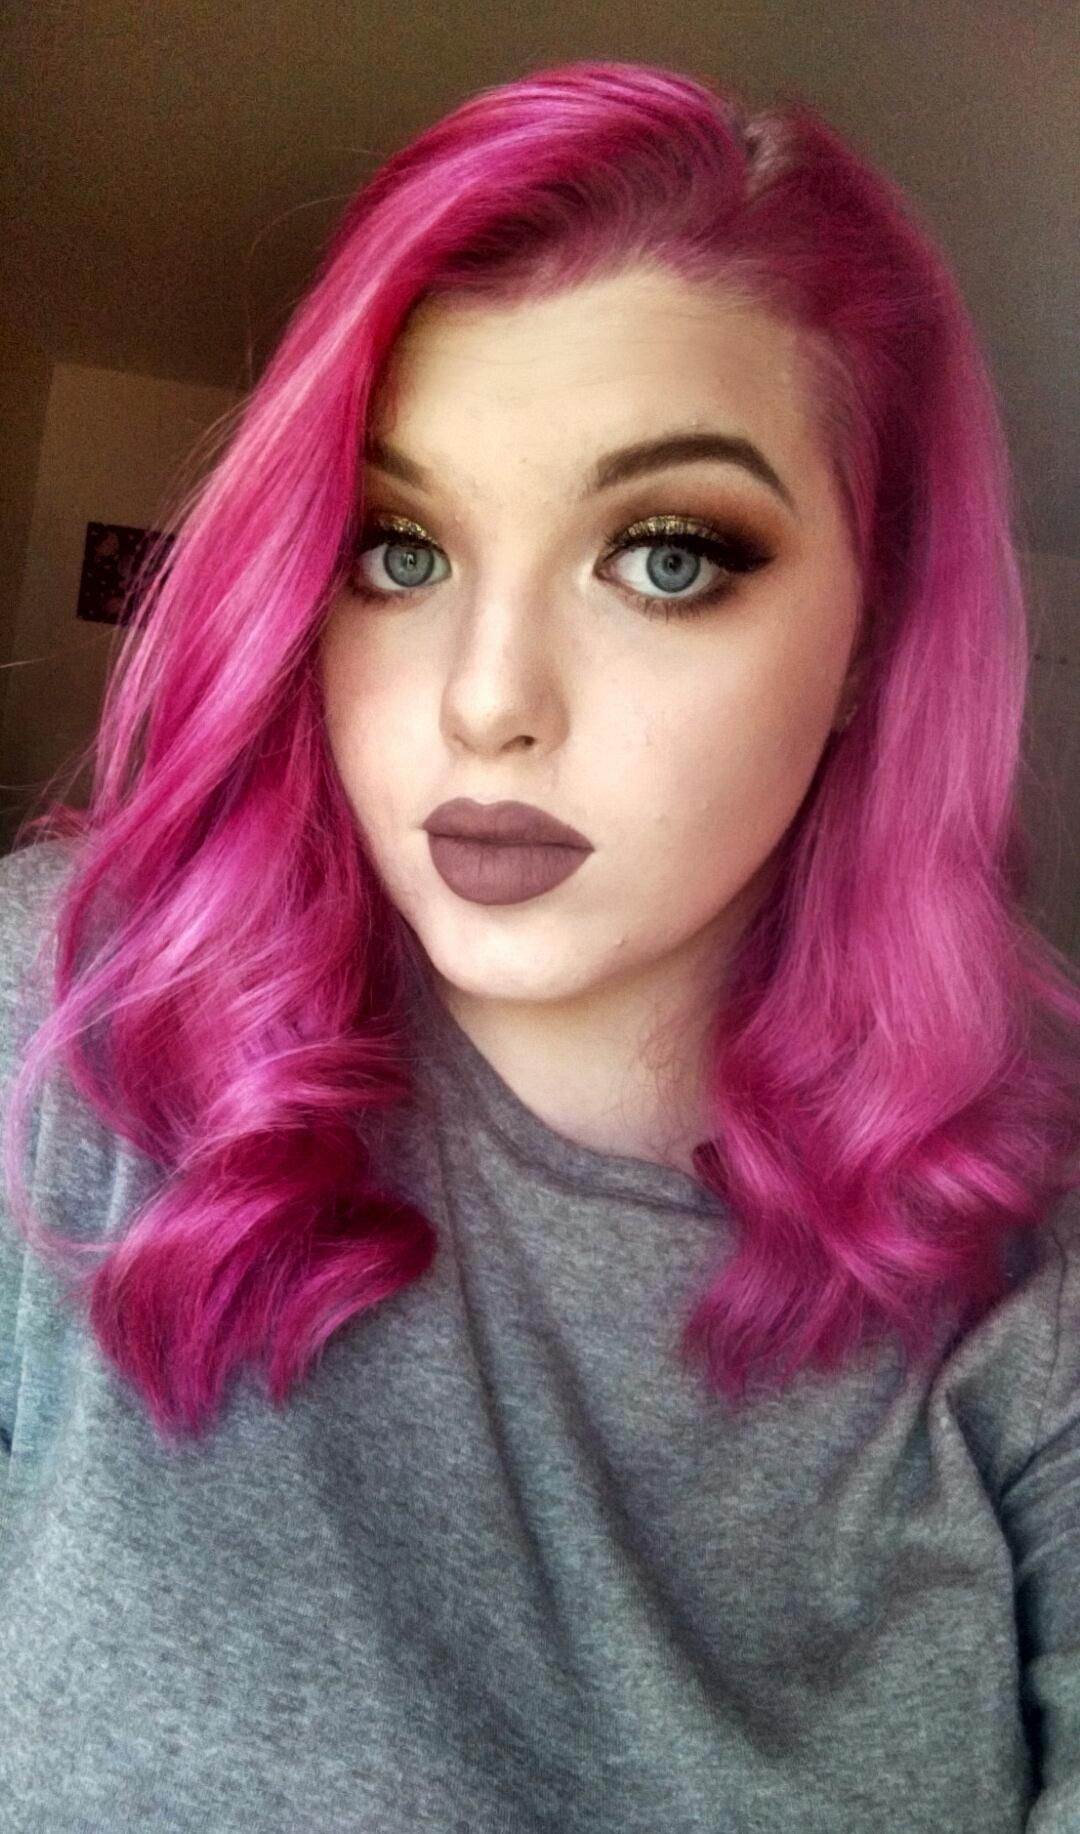 L'Oreal Colorista Pink hair beauty Skin Deals me